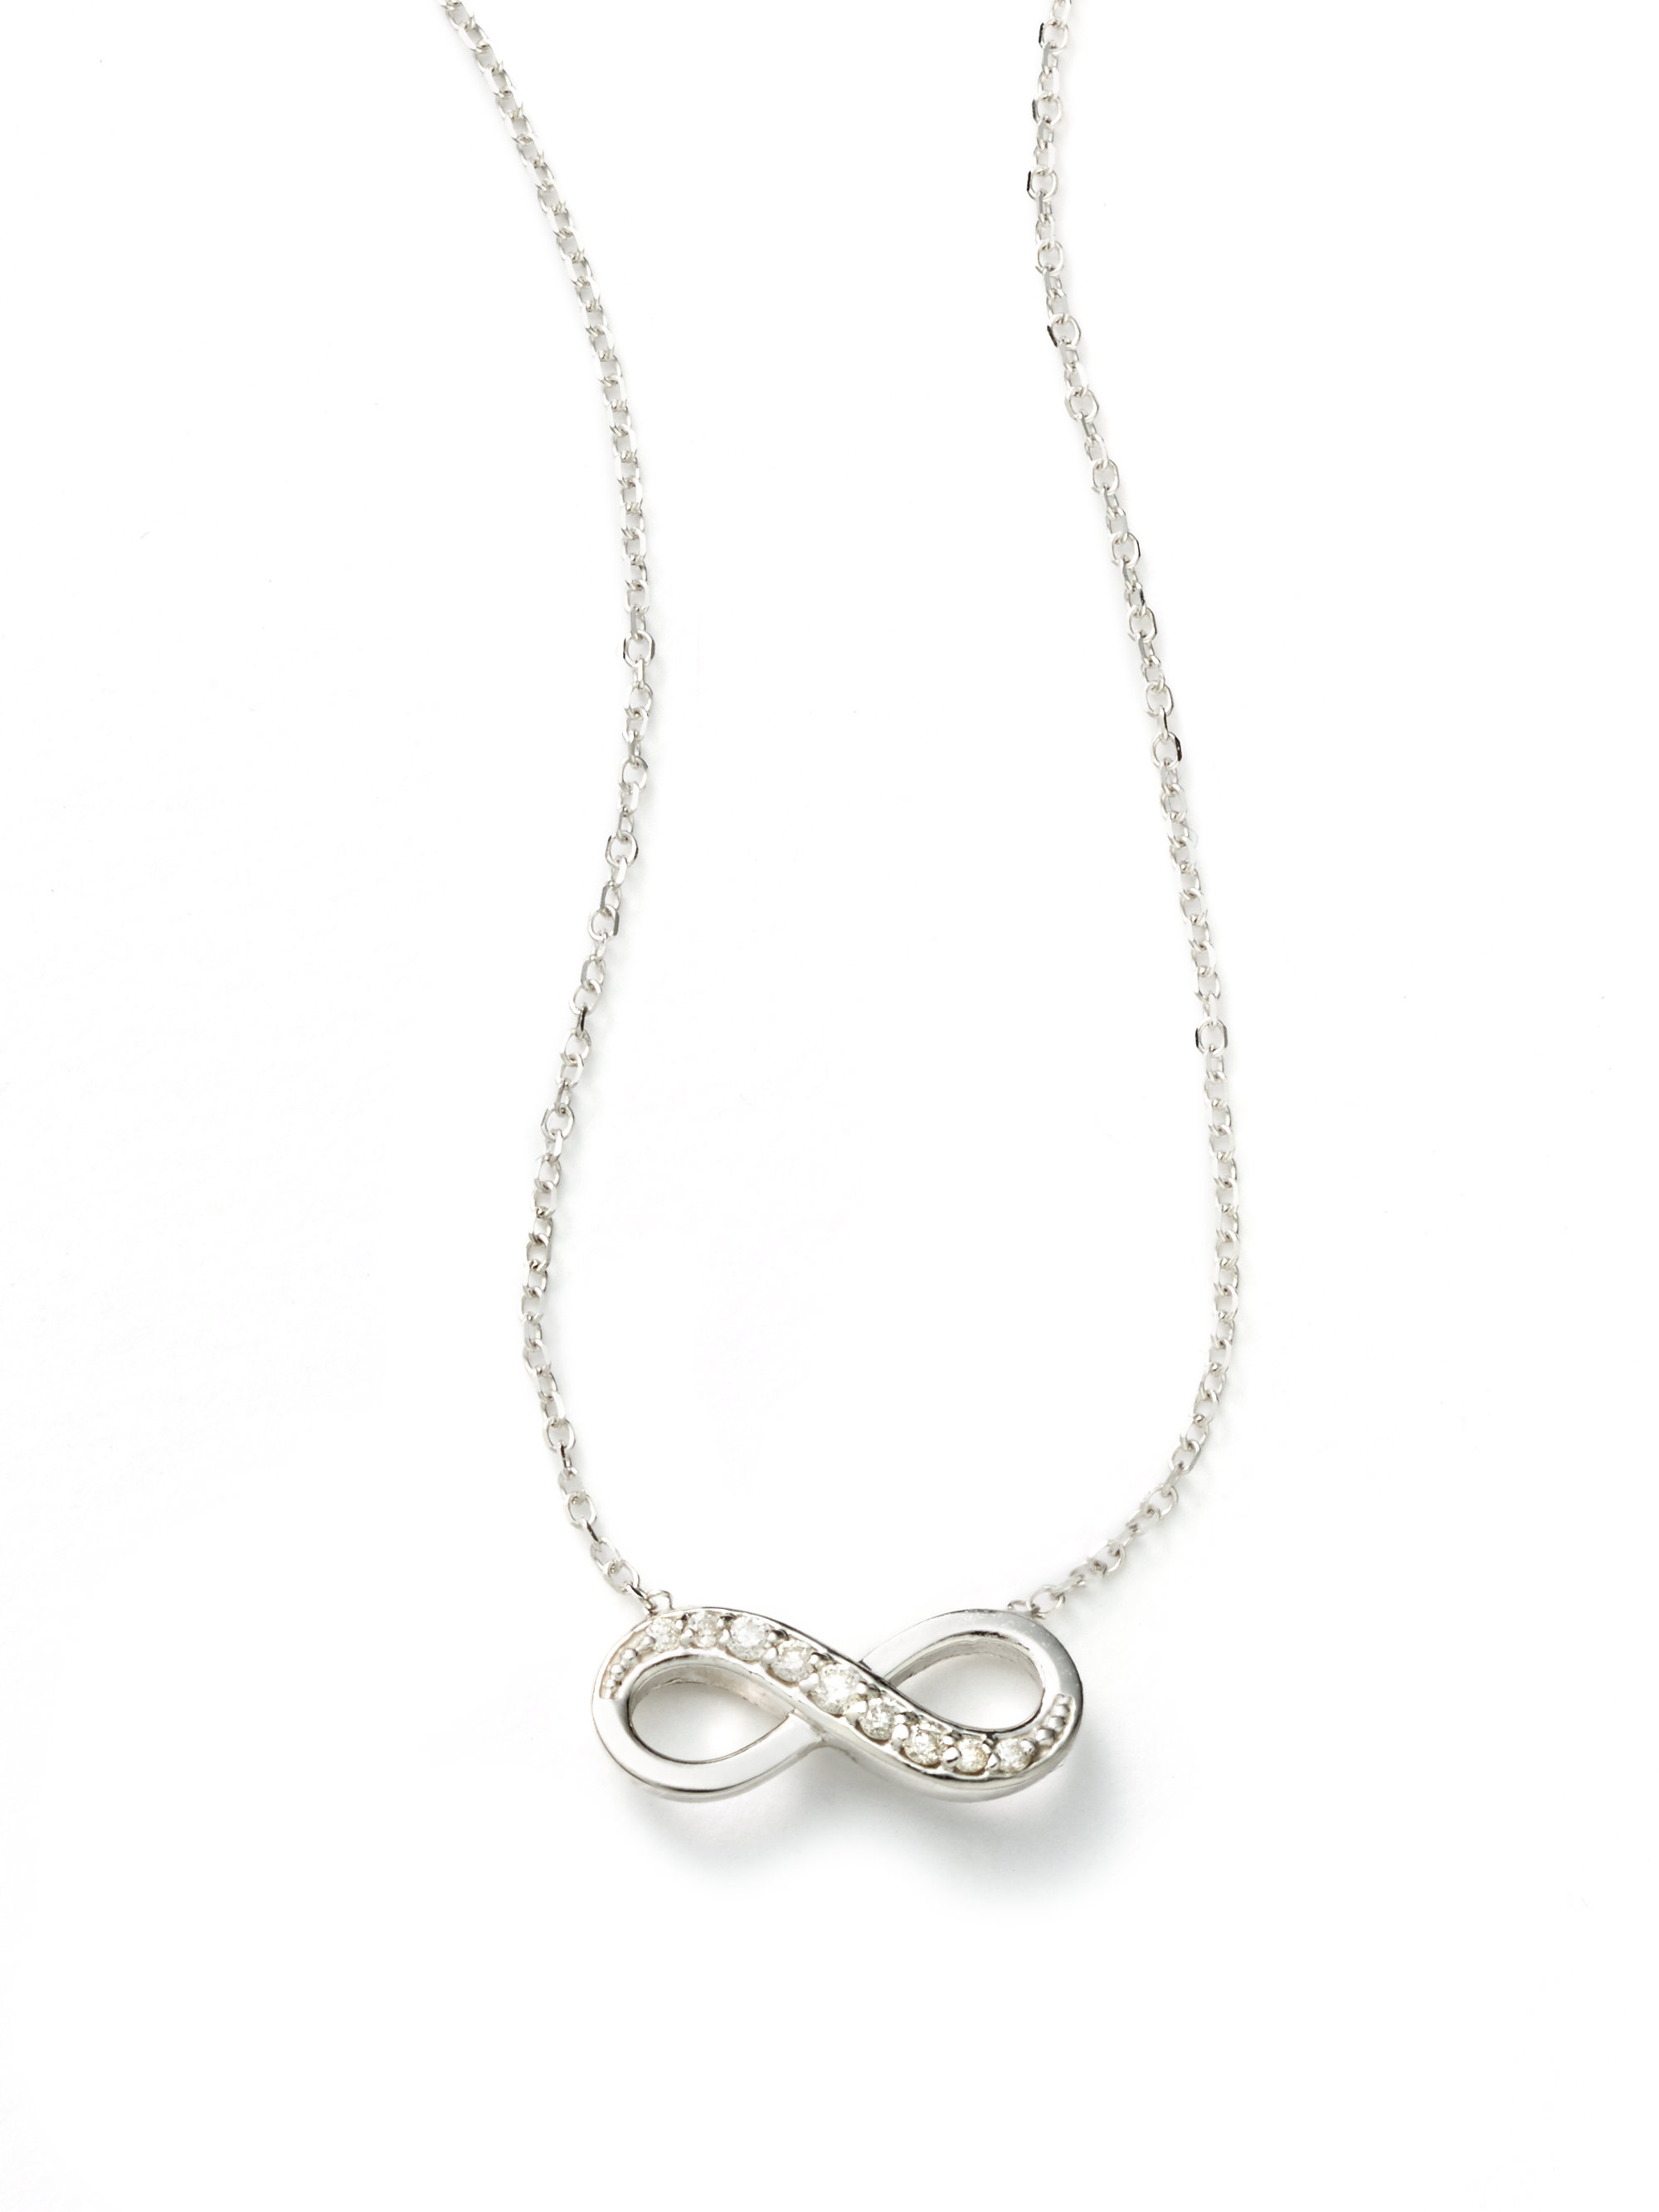 Kc designs Diamond 14k White Gold Infinity Necklace in Metallic